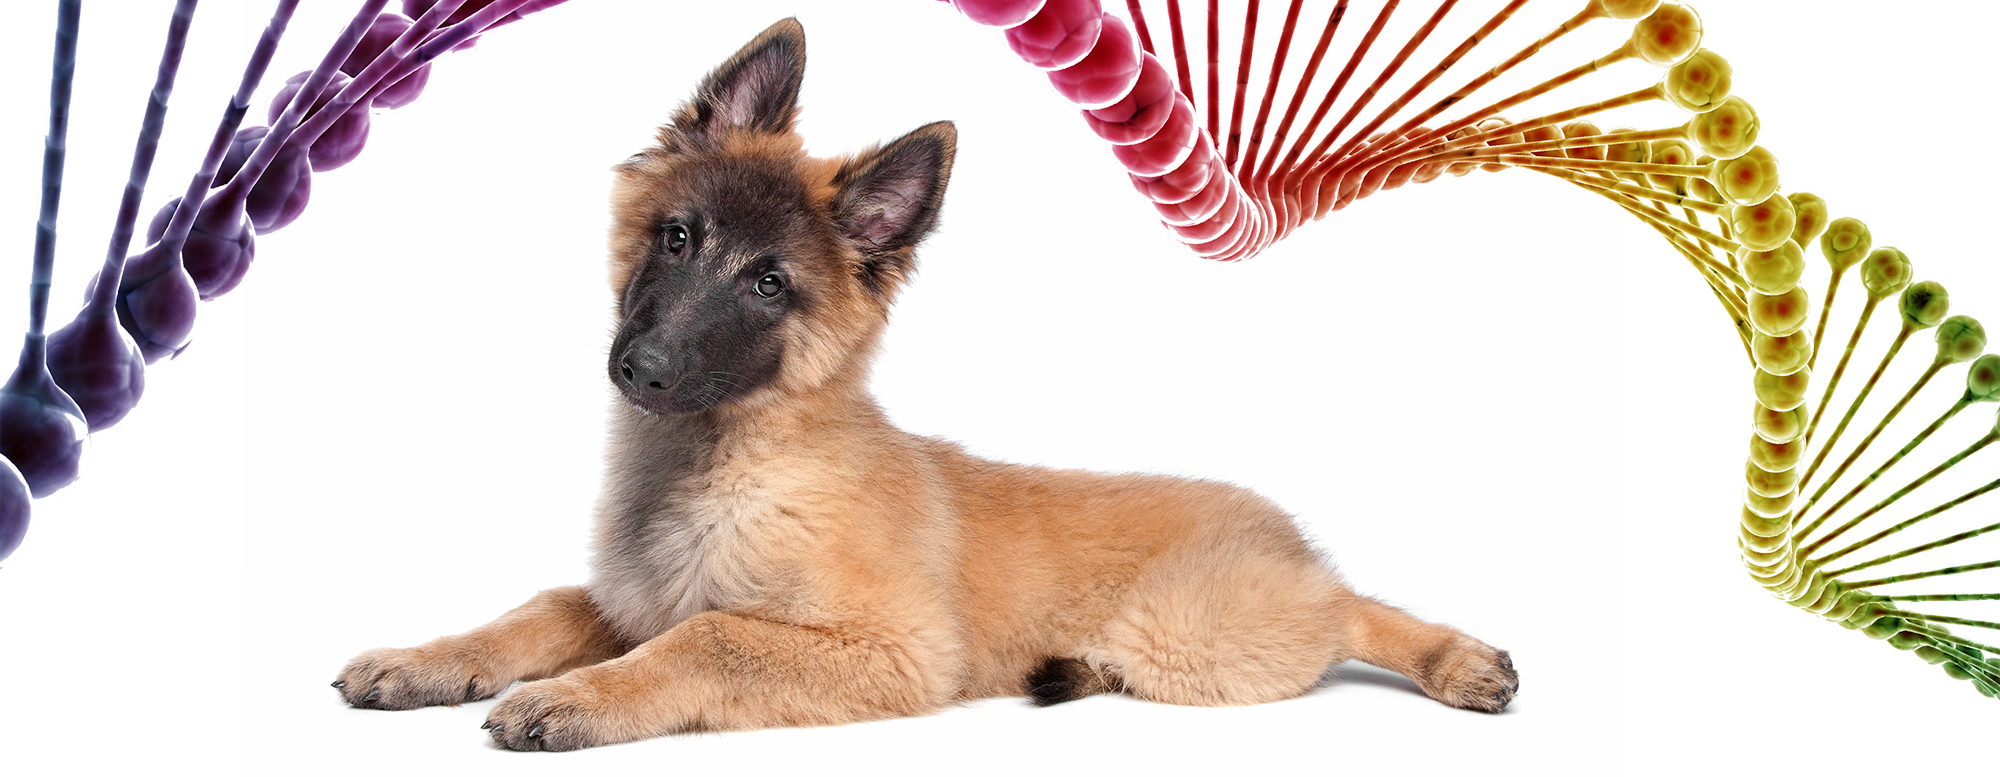 Beyond Dog DNA tests: What Breeders Should Know About Complex Genetics